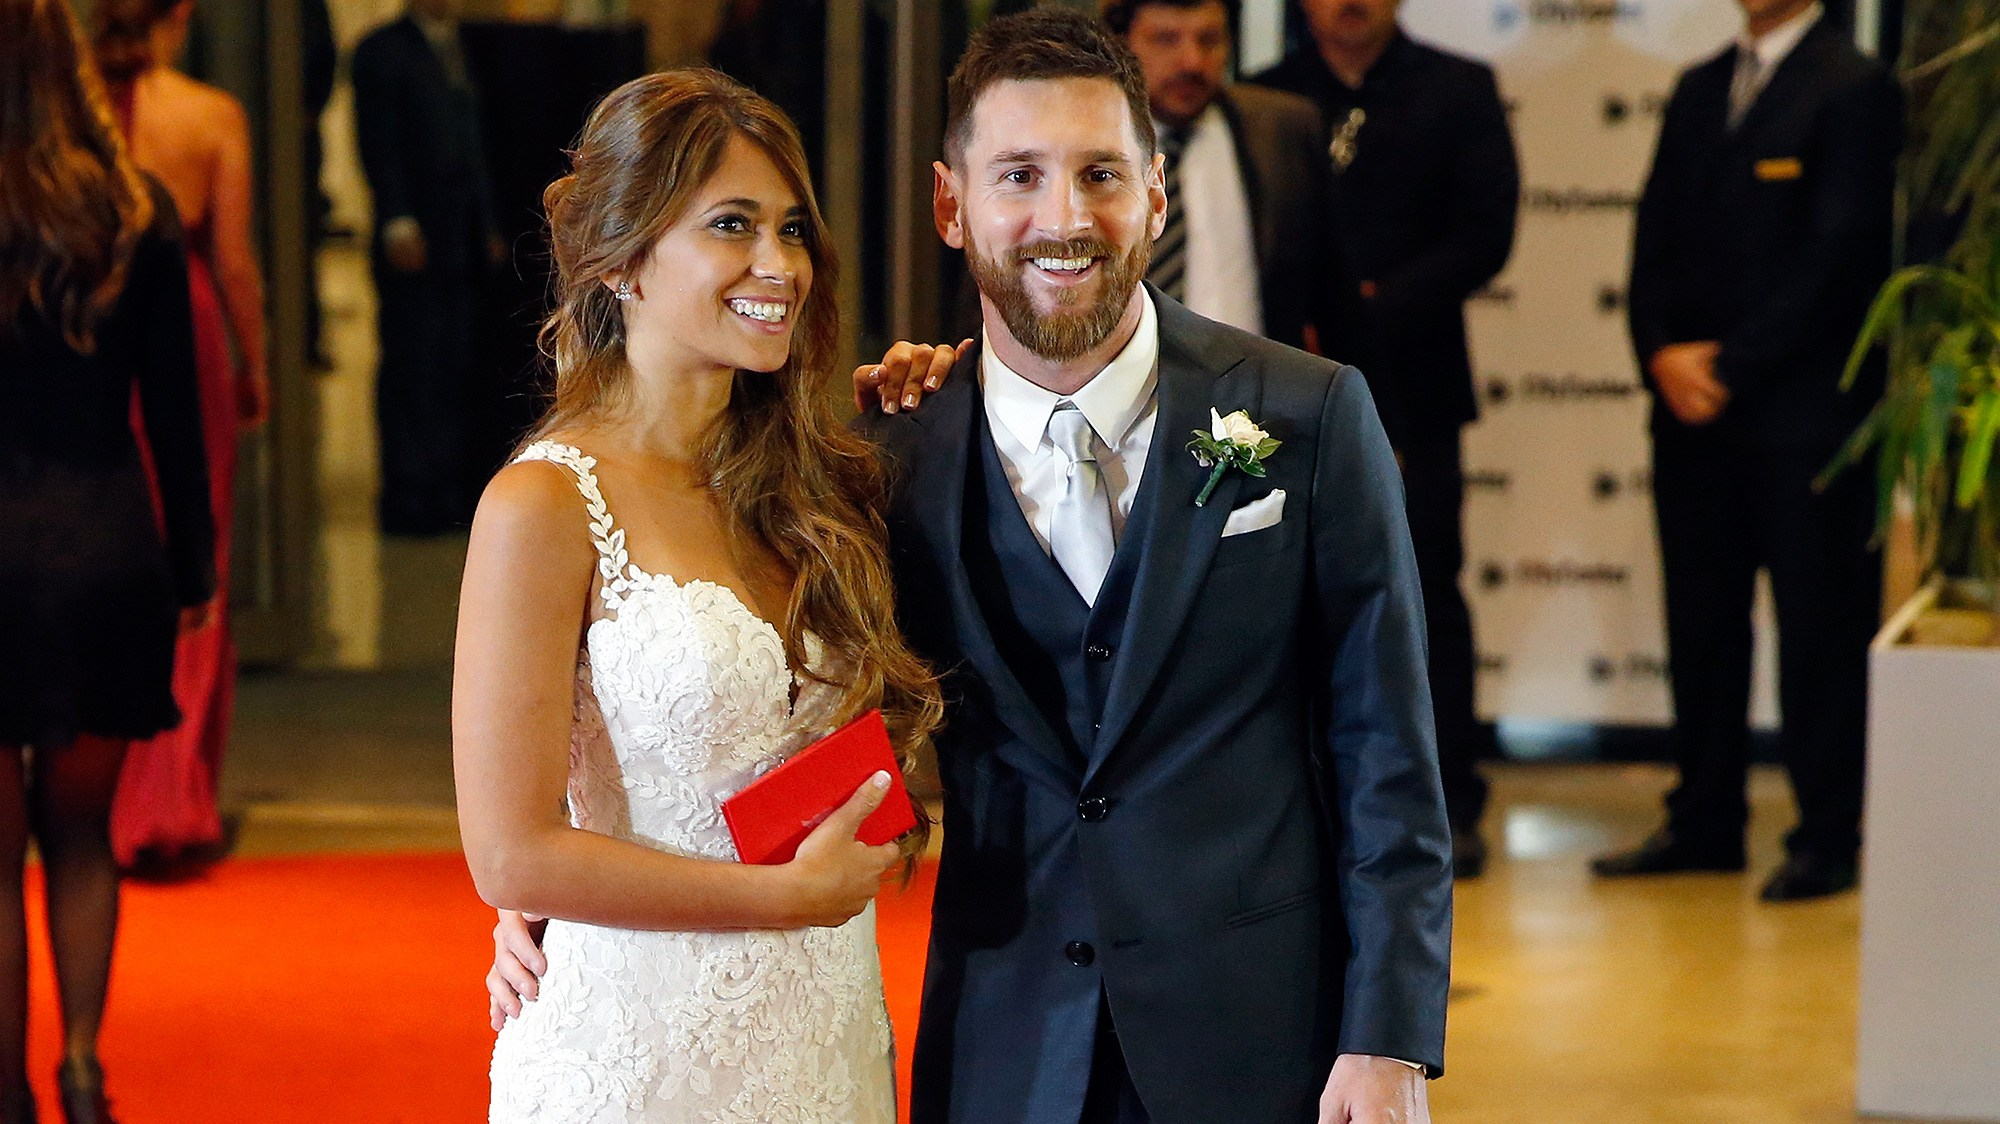 Lionel Messi and Antonela Rocuzzo